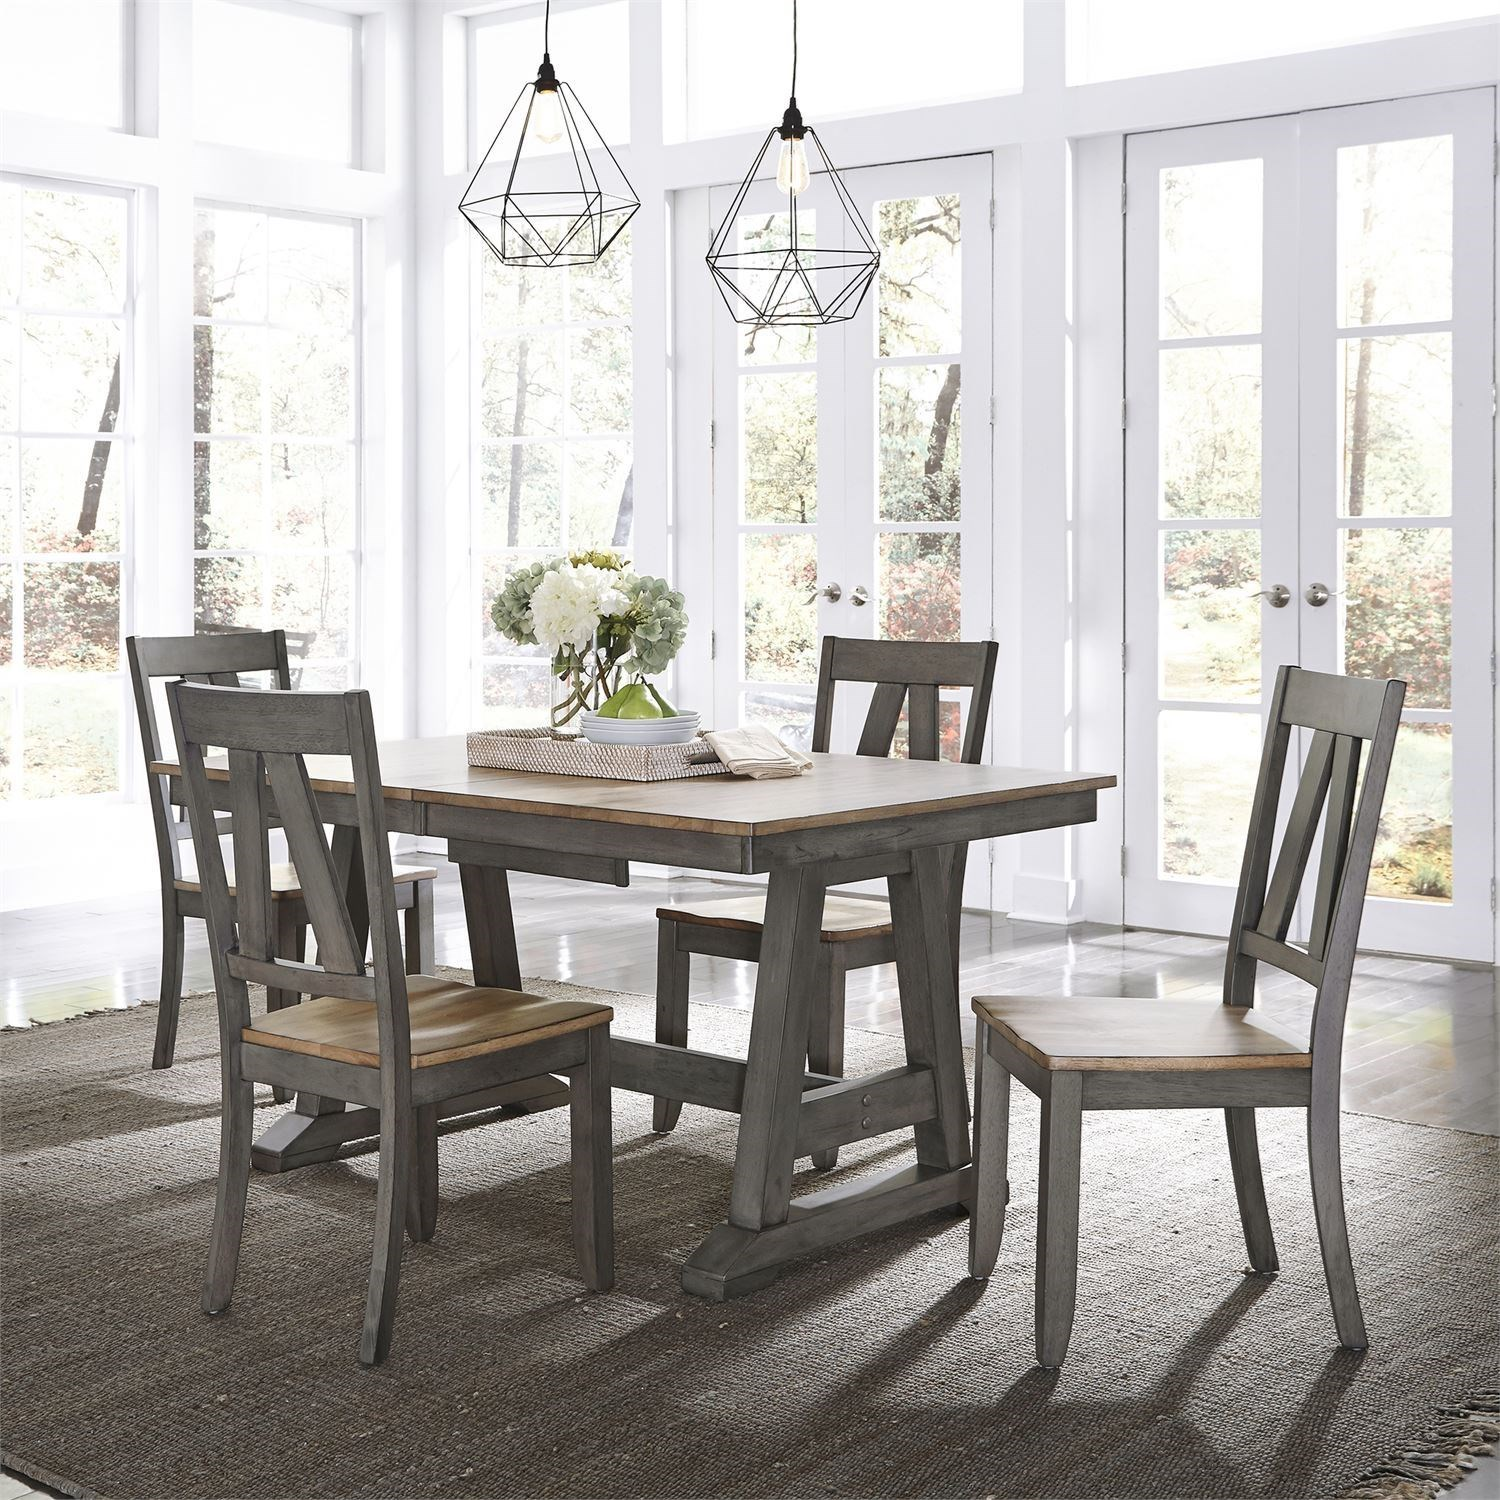 Lindsey Farm 5-Piece Trestle Table Set by Liberty Furniture at Northeast Factory Direct